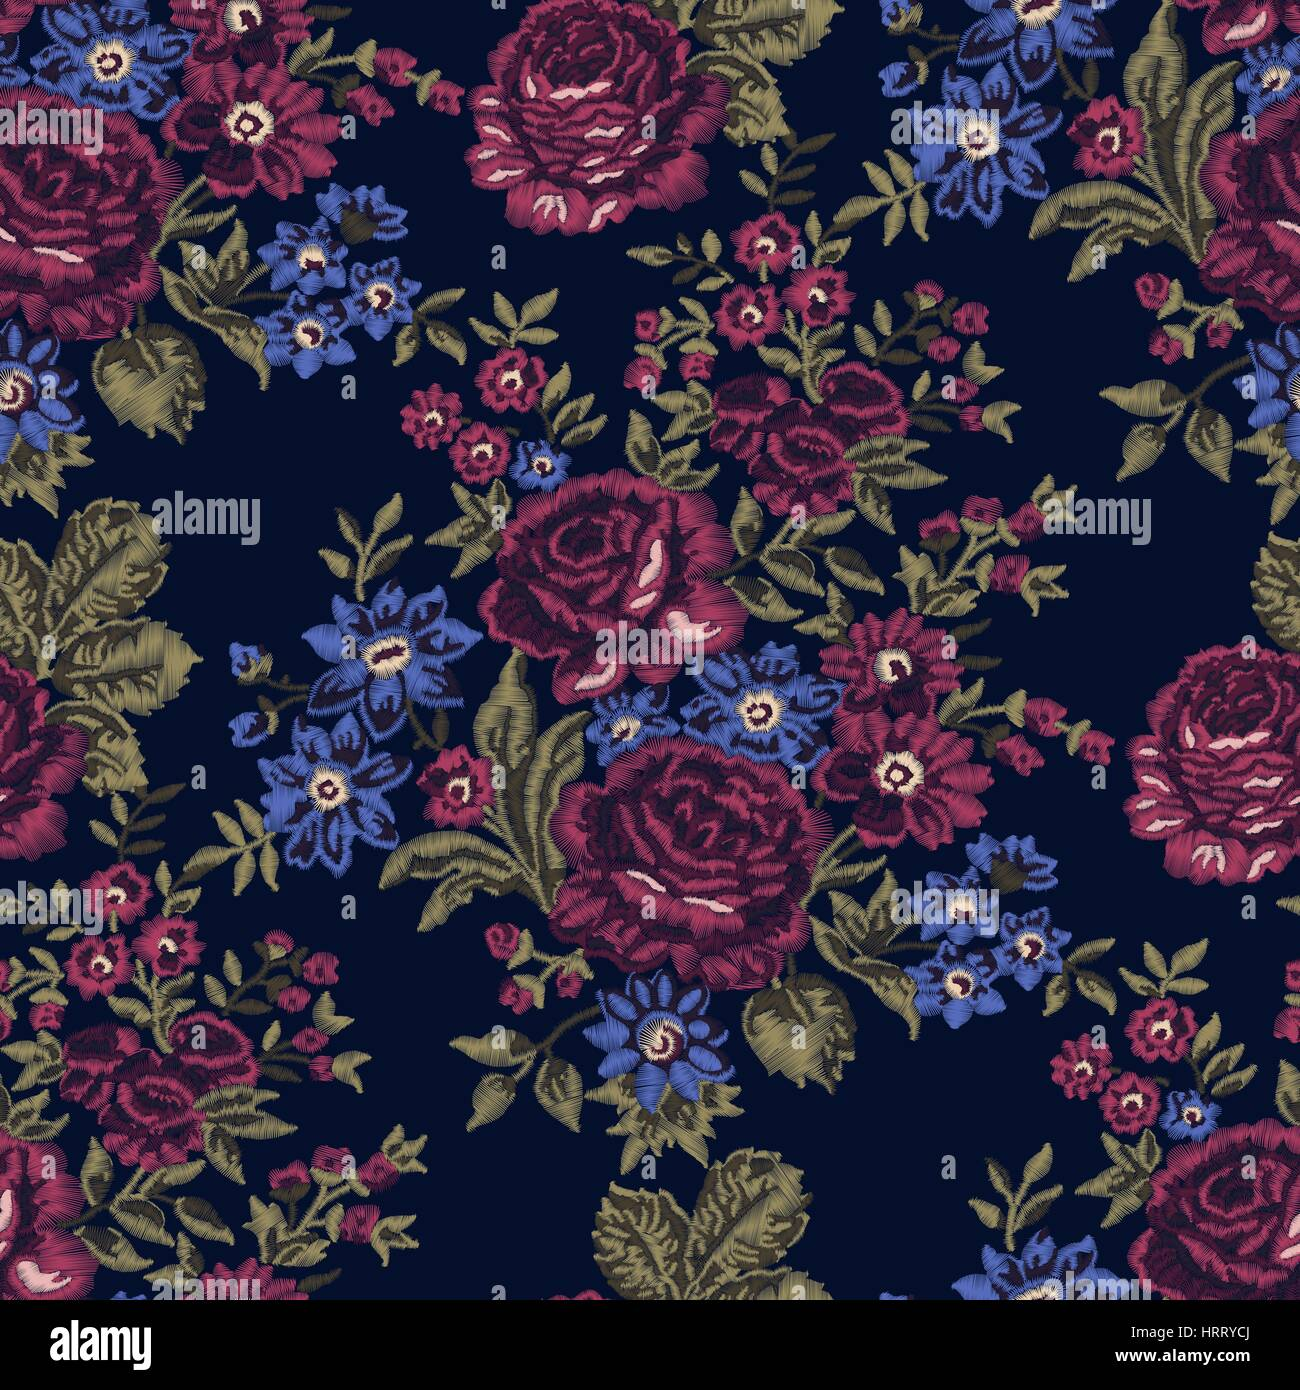 Seamless Embroidered Floral Pattern Luxurious Roses Vintage